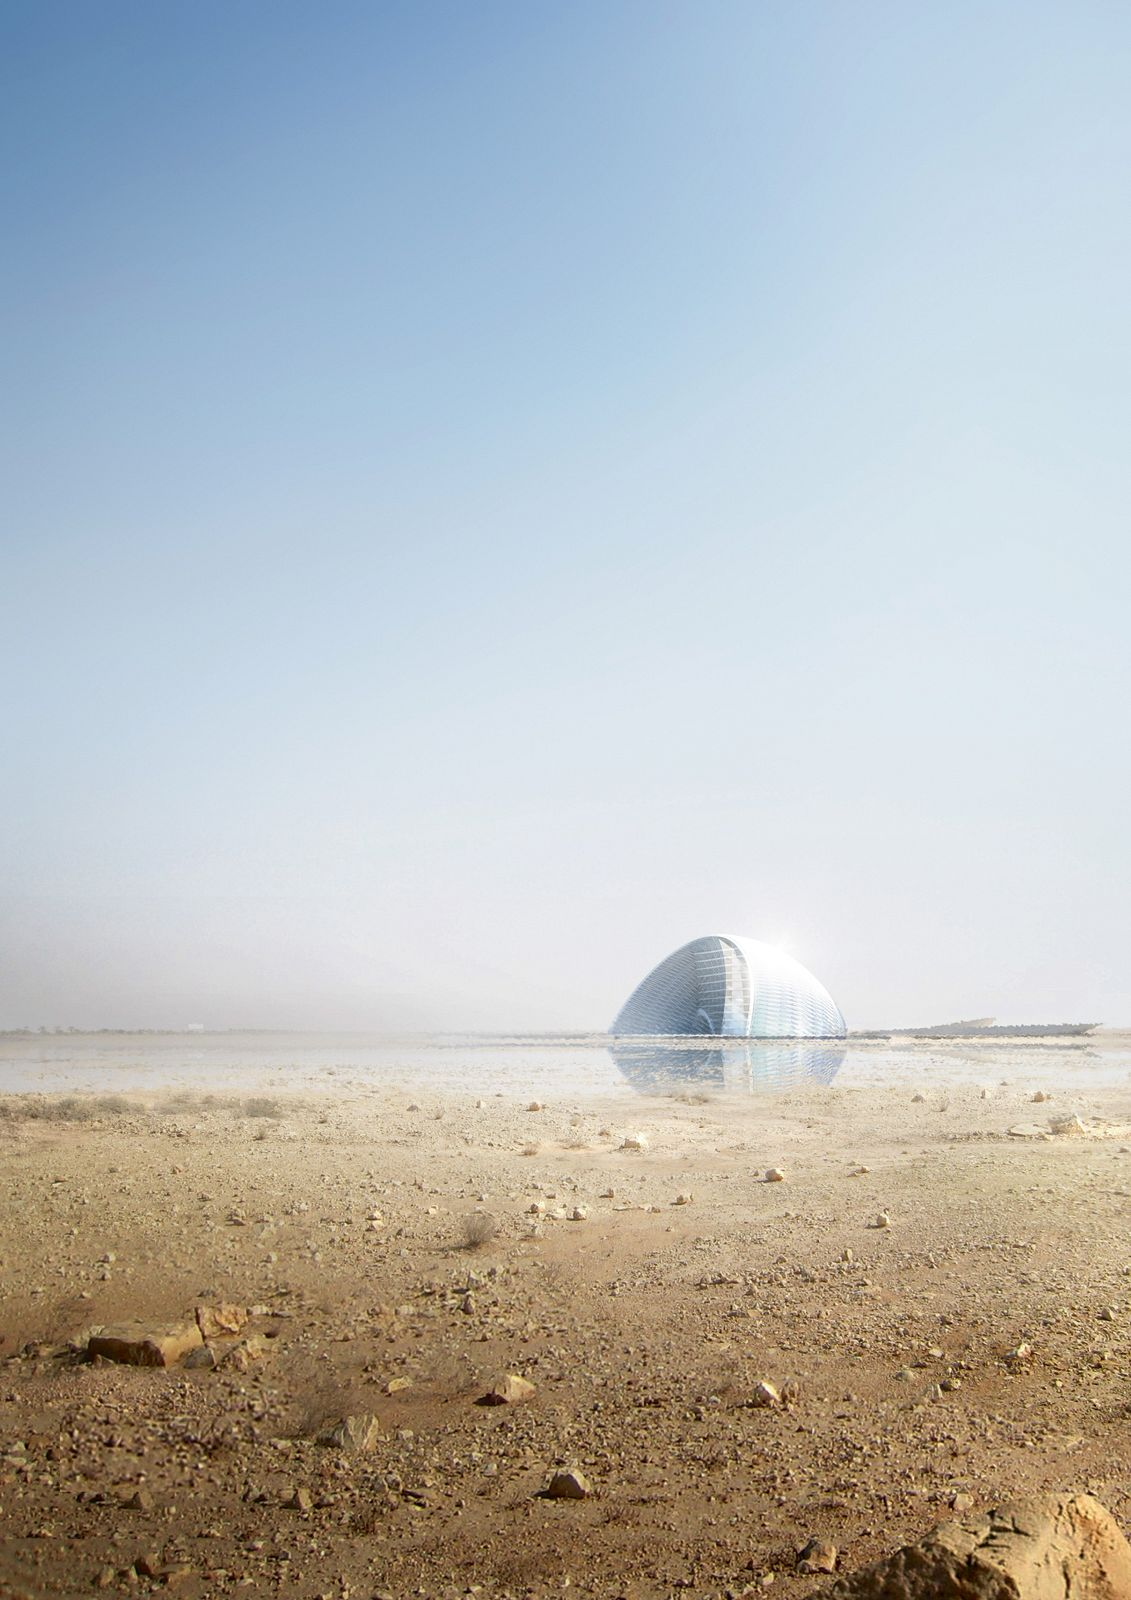 Kapsarc, Saudi Arabia, competition project.